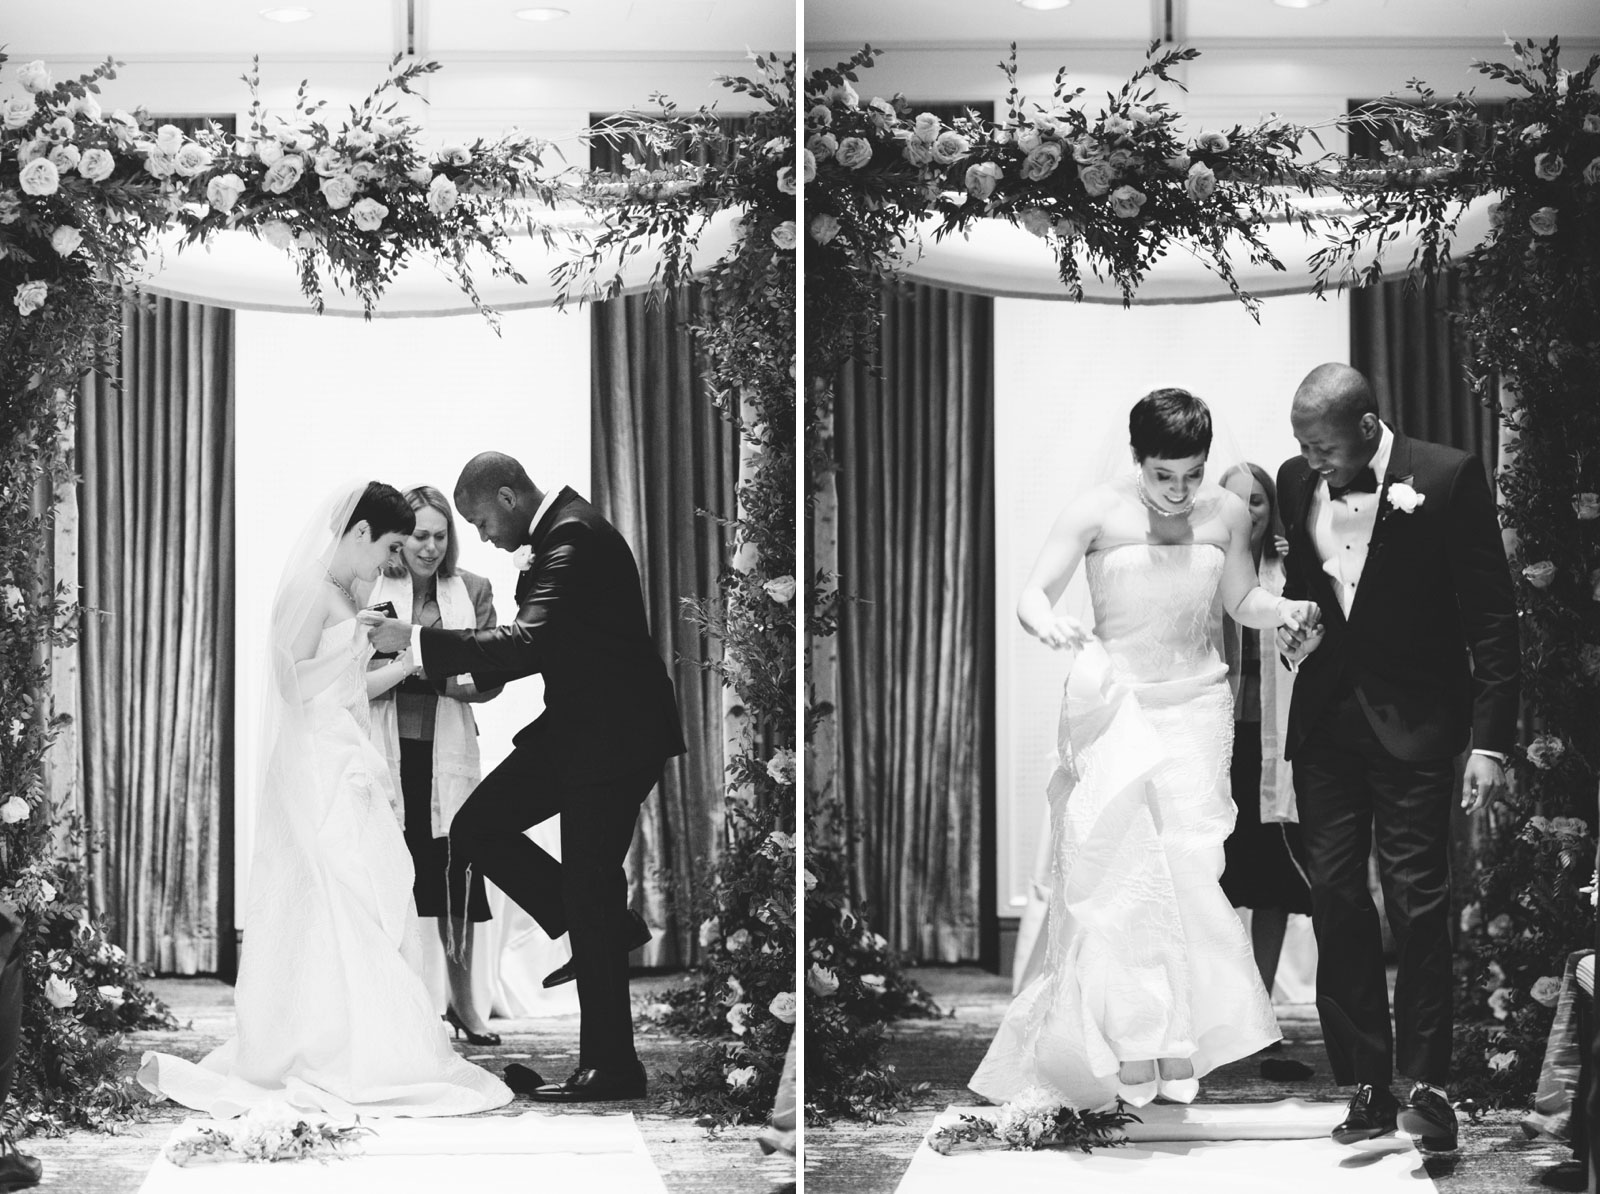 Groom breaking the glass and bride and groom jumping the broom at multicultural wedding ceremony